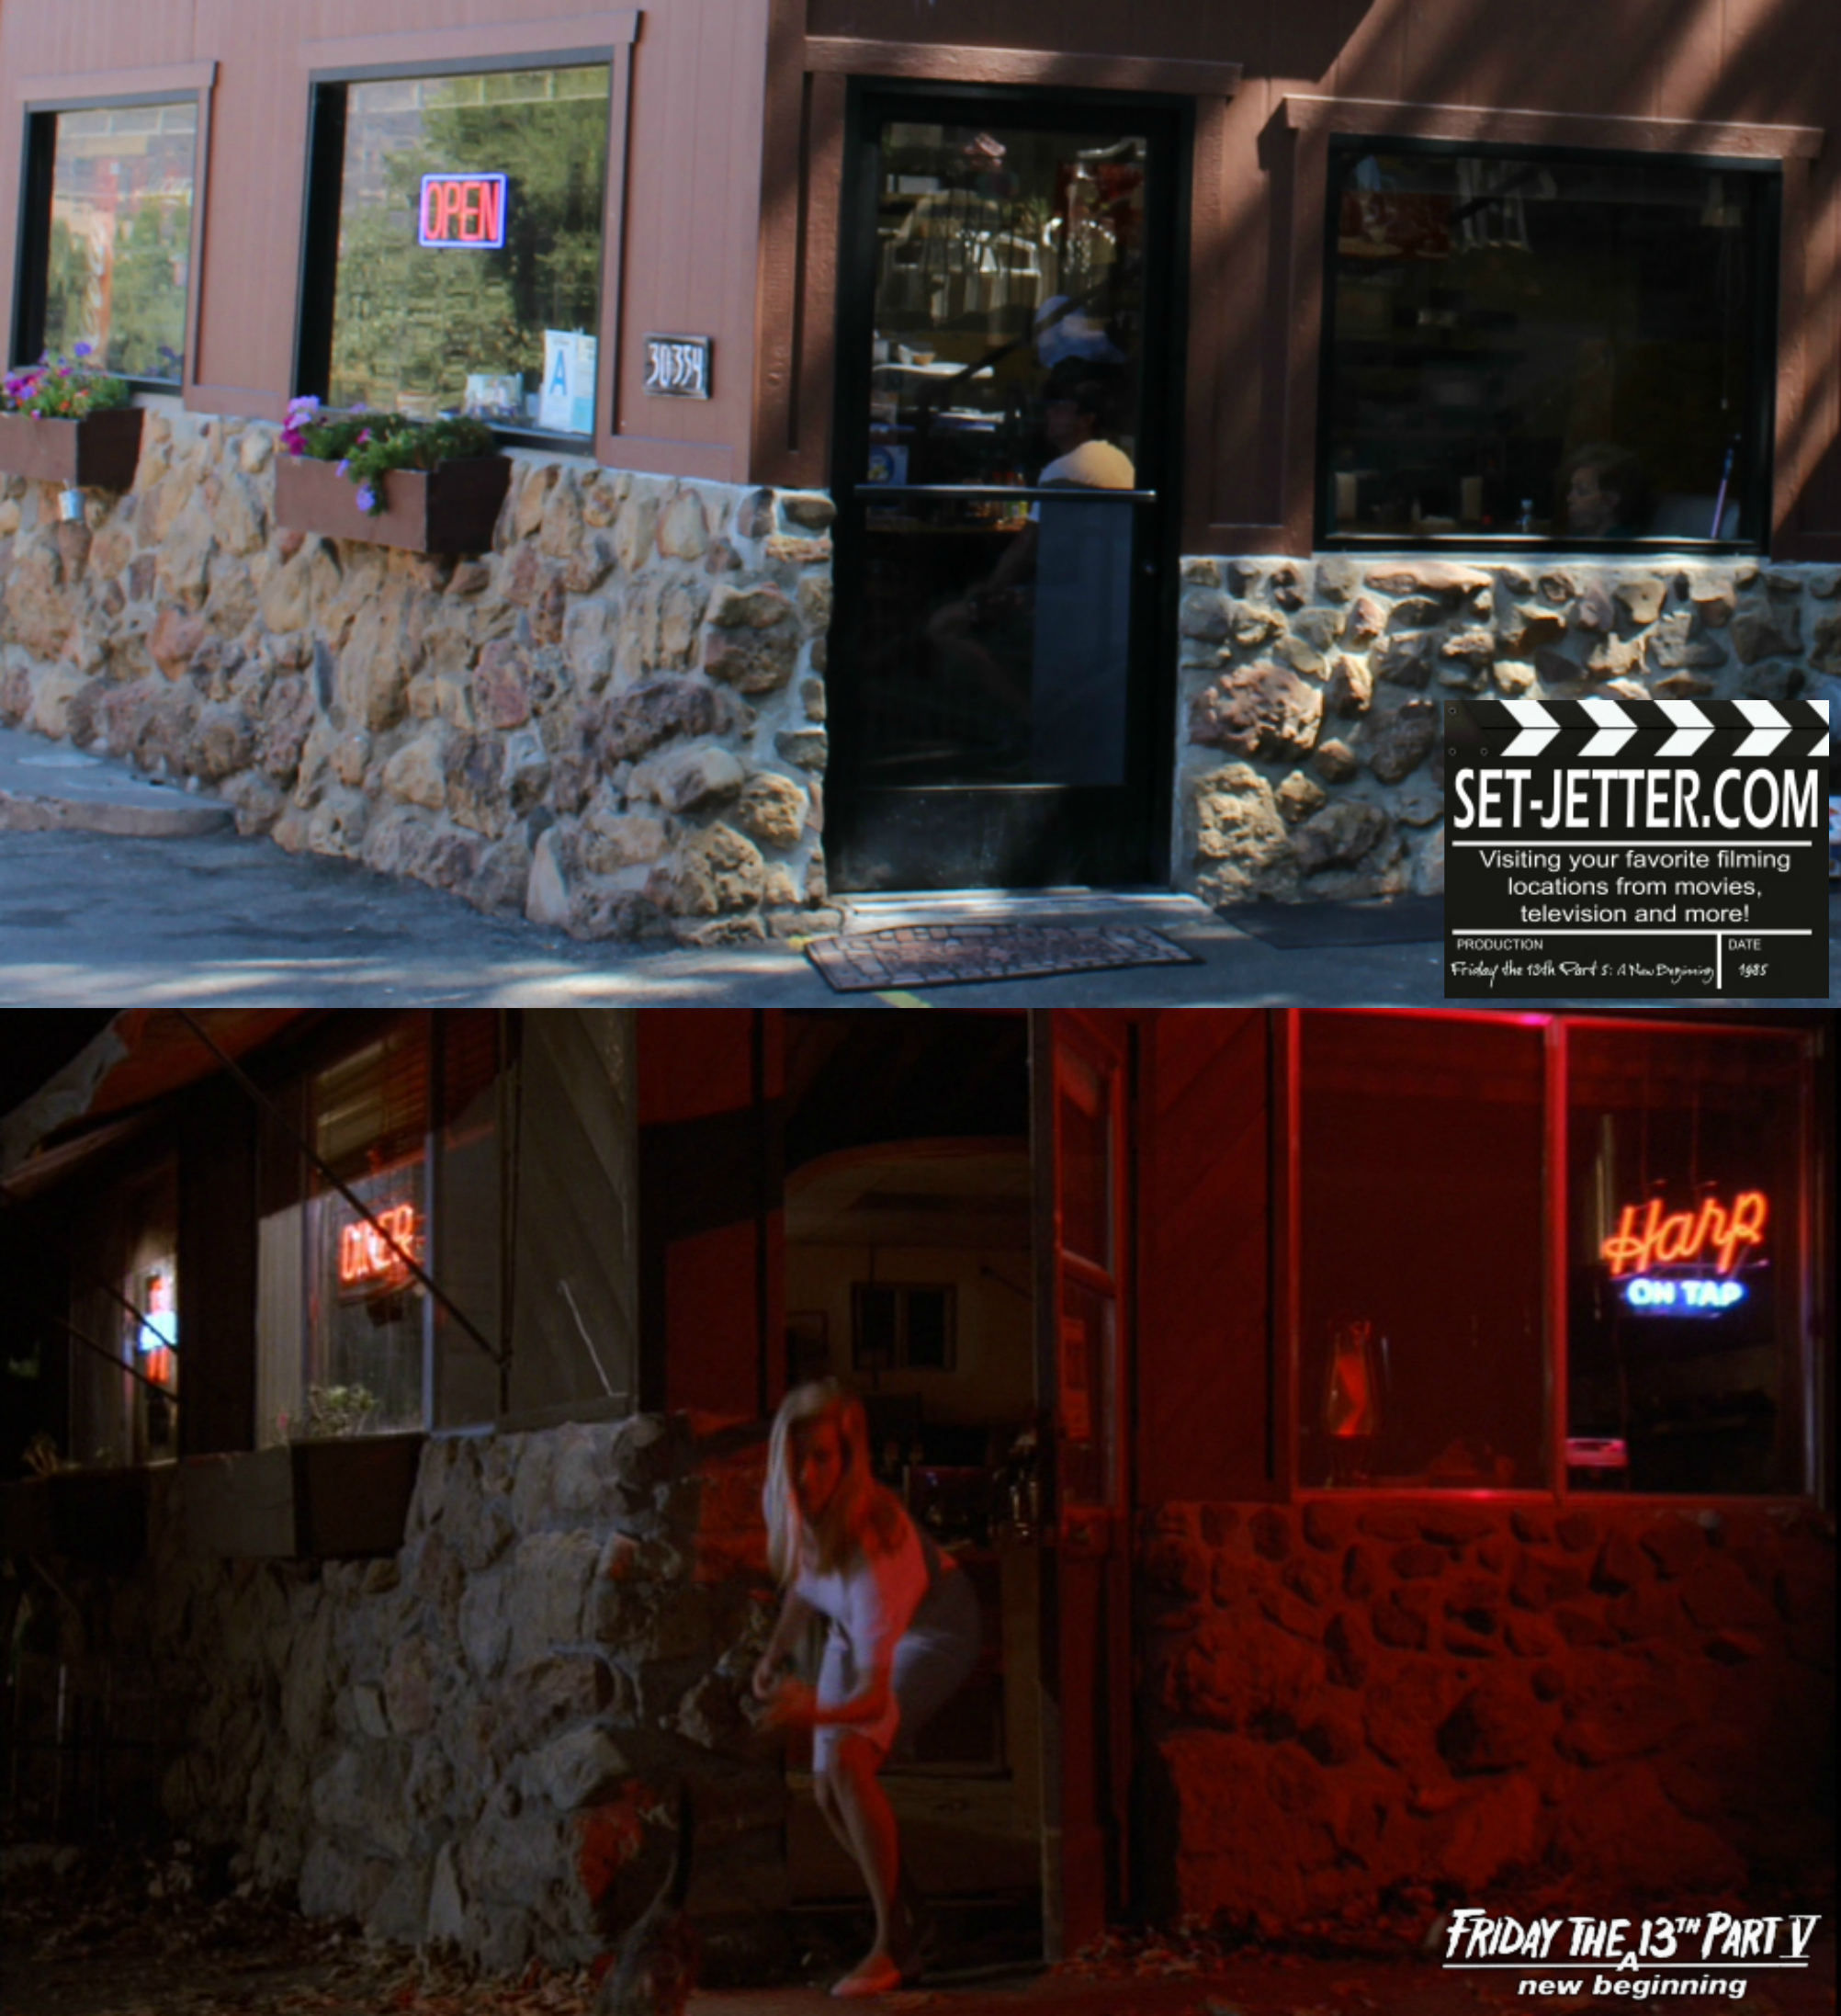 Friday the 13th Part V comparison 15.jpg